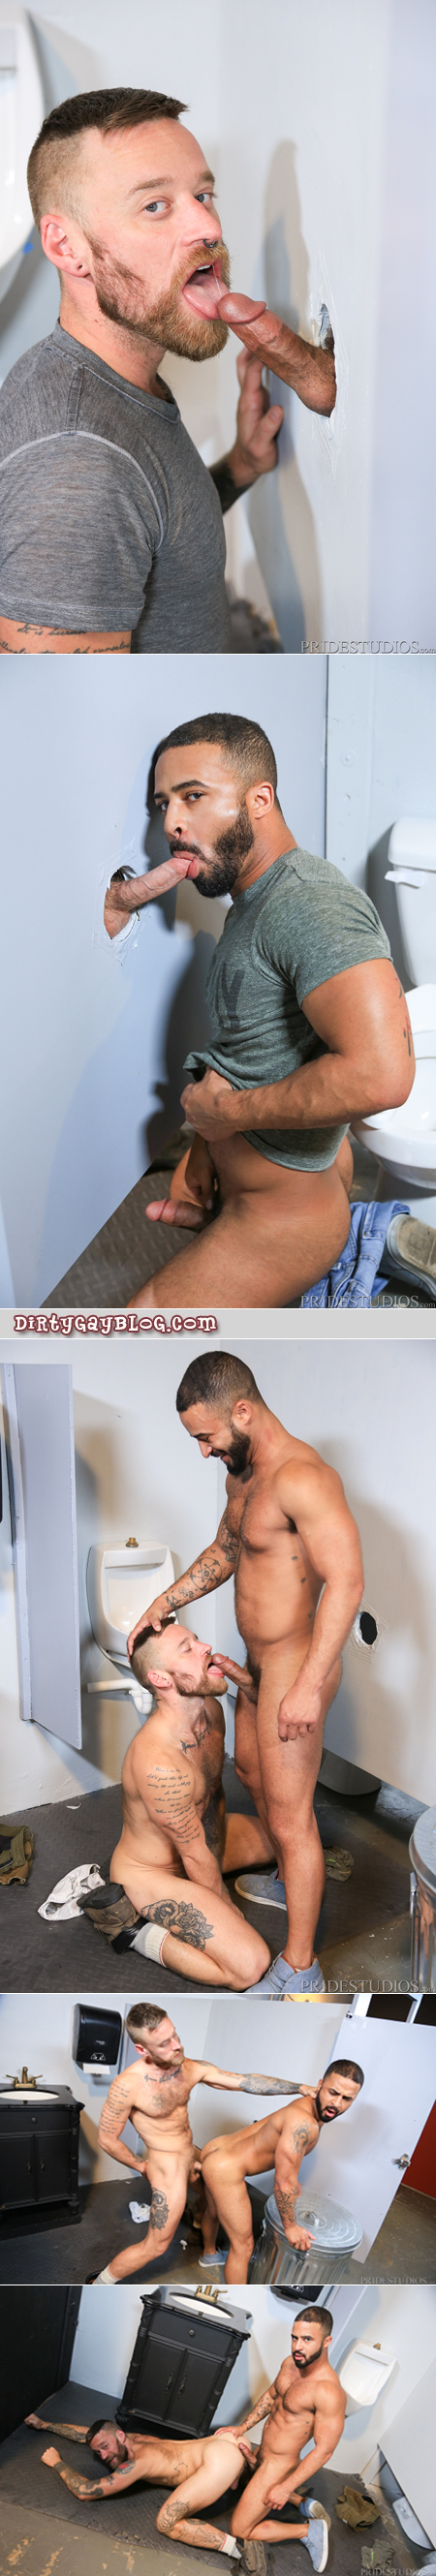 Interracial gay flip-fucking at a glory hole bathroom.